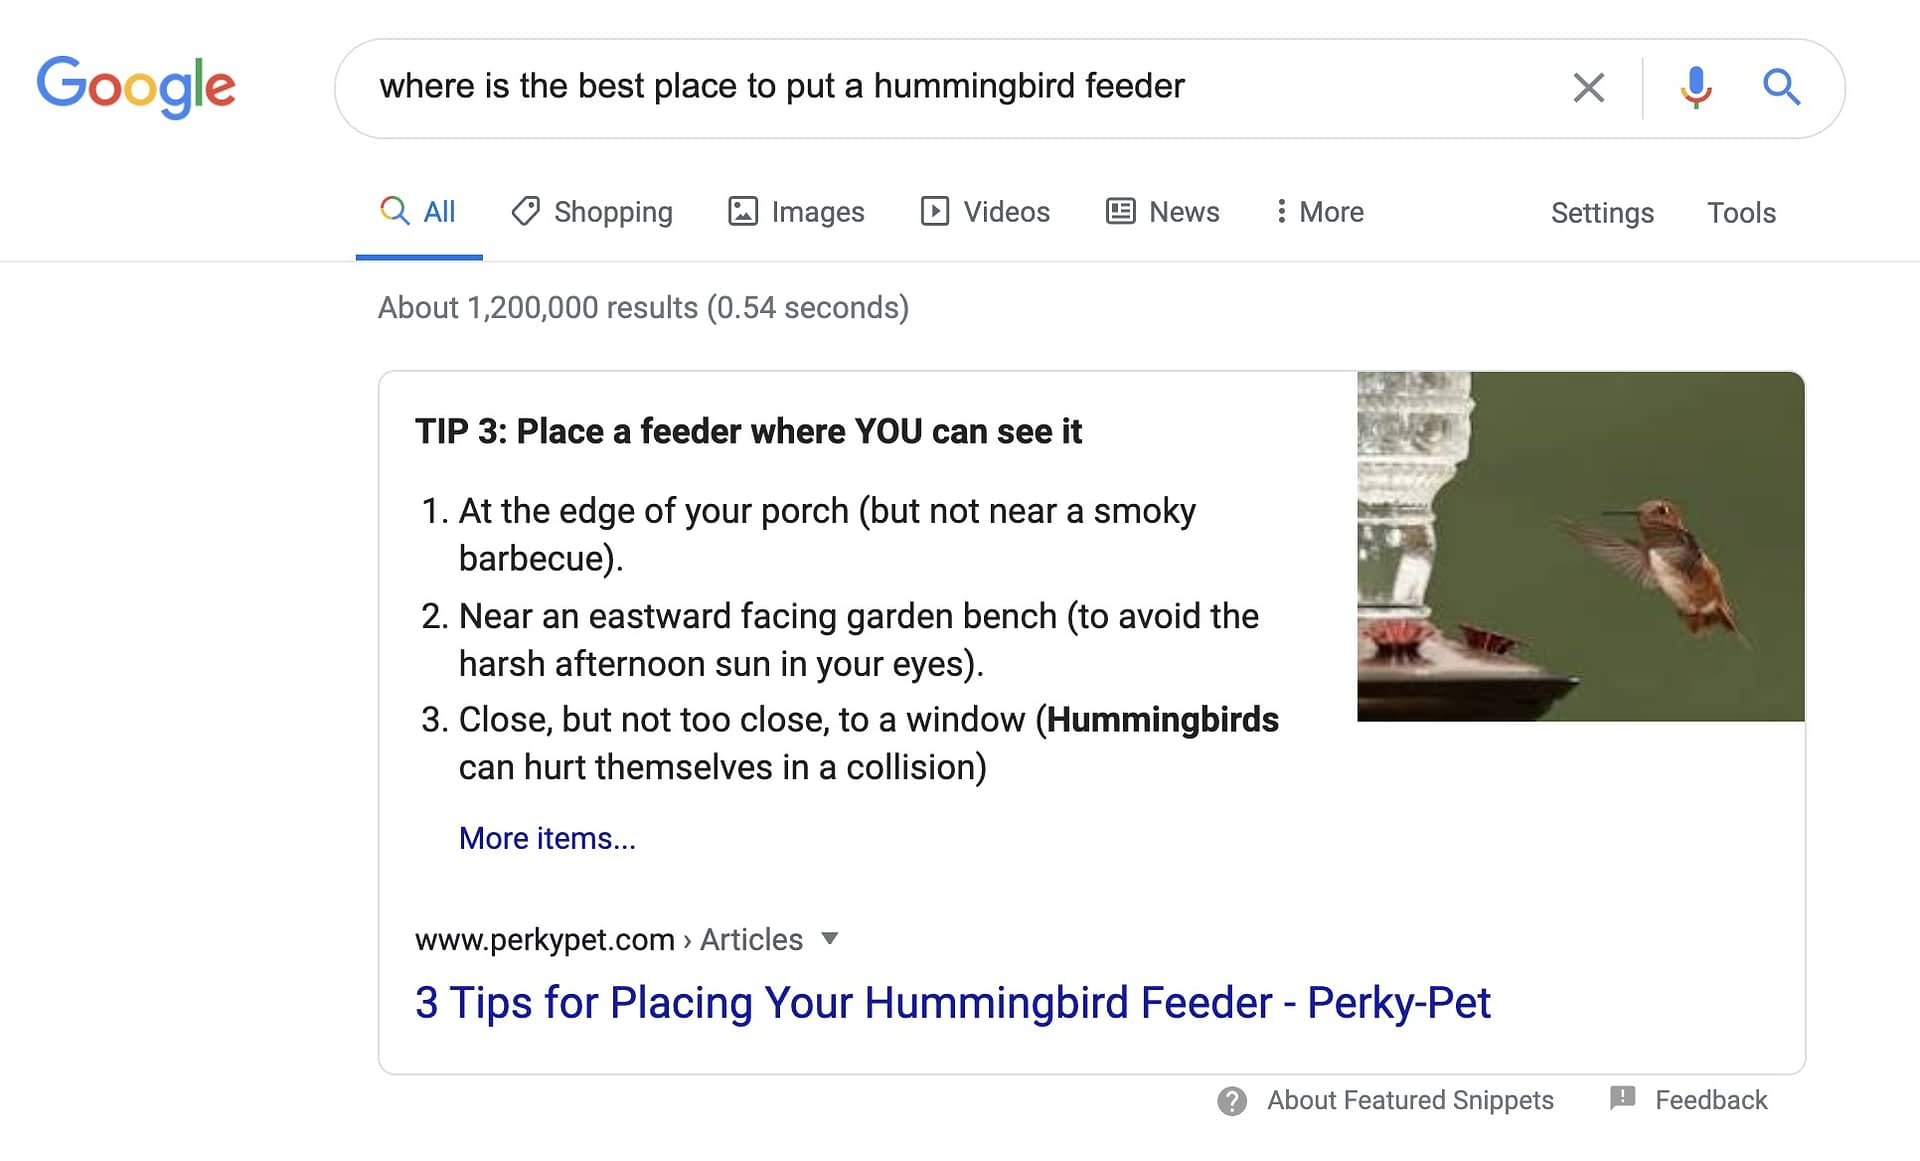 where is the best place to put a hummingbird feeder